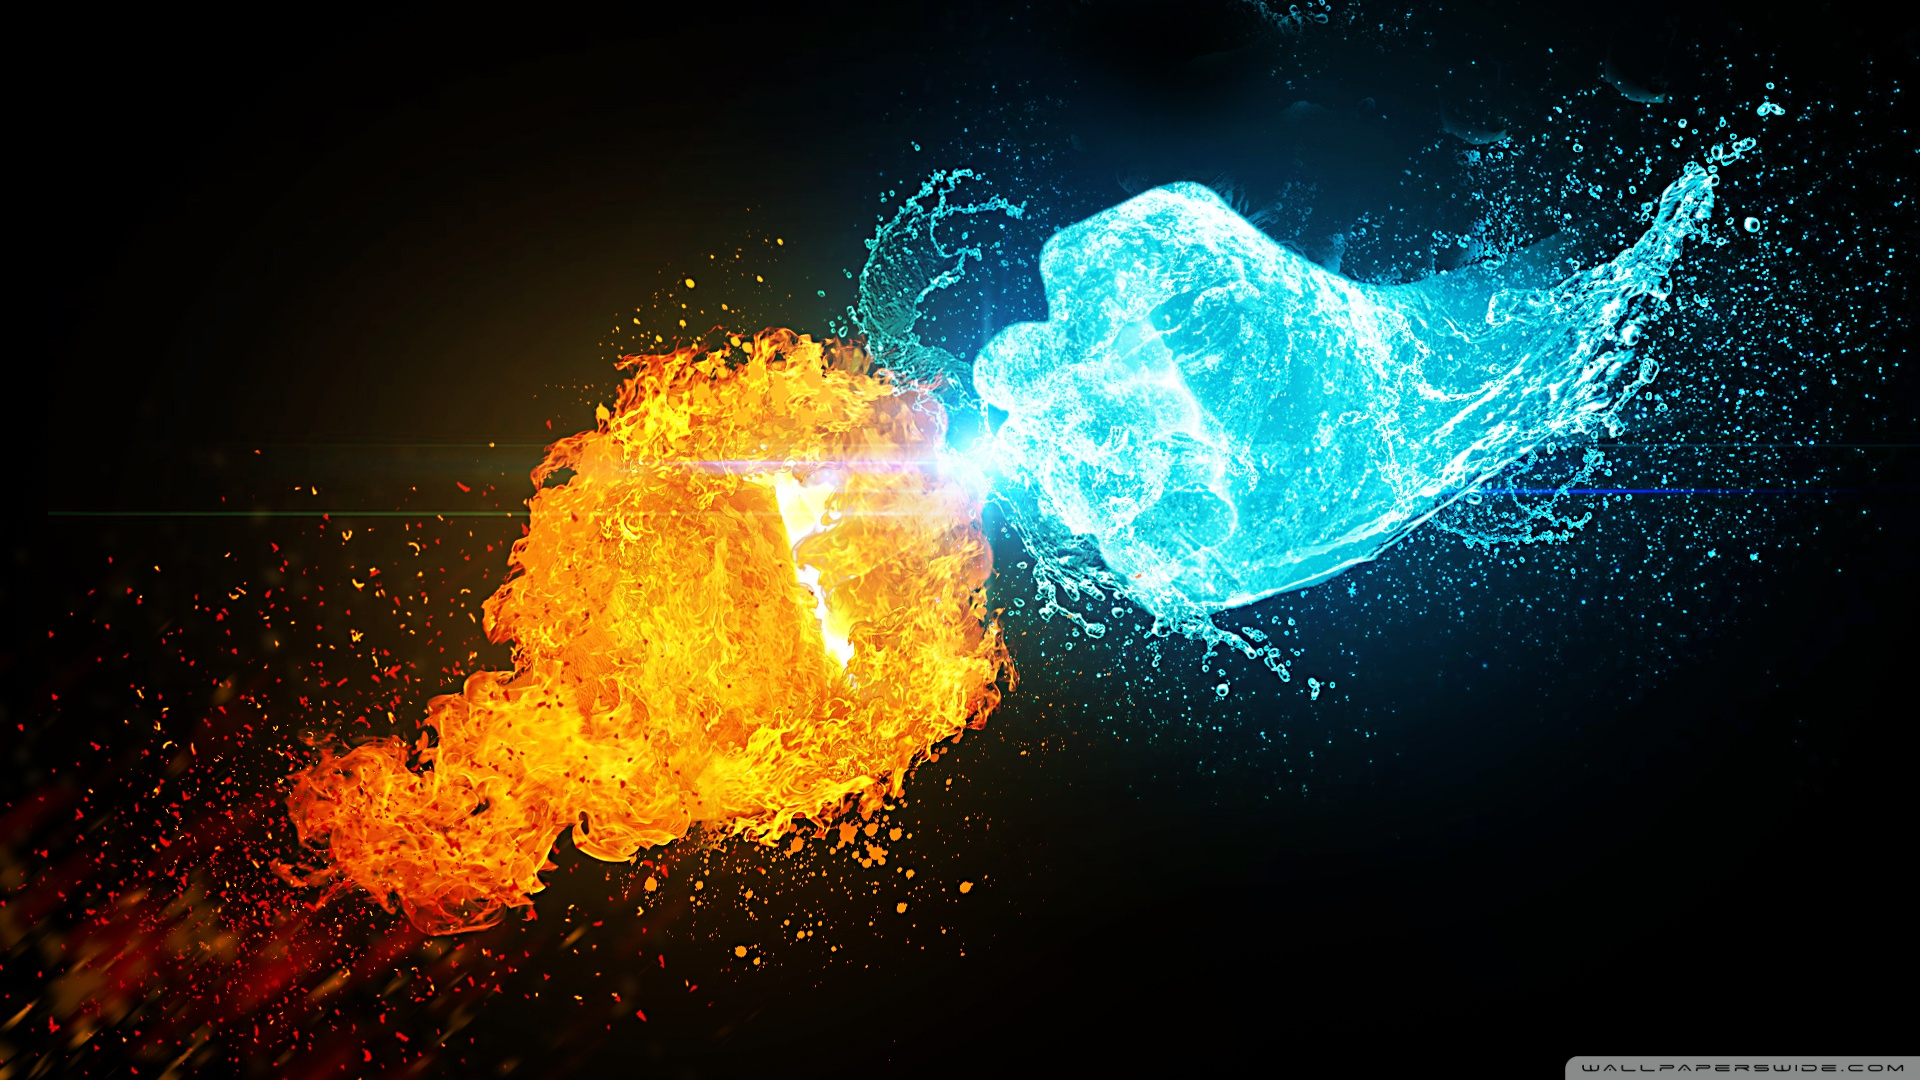 Fire vs Ice HD Wide Wallpaper for Widescreen